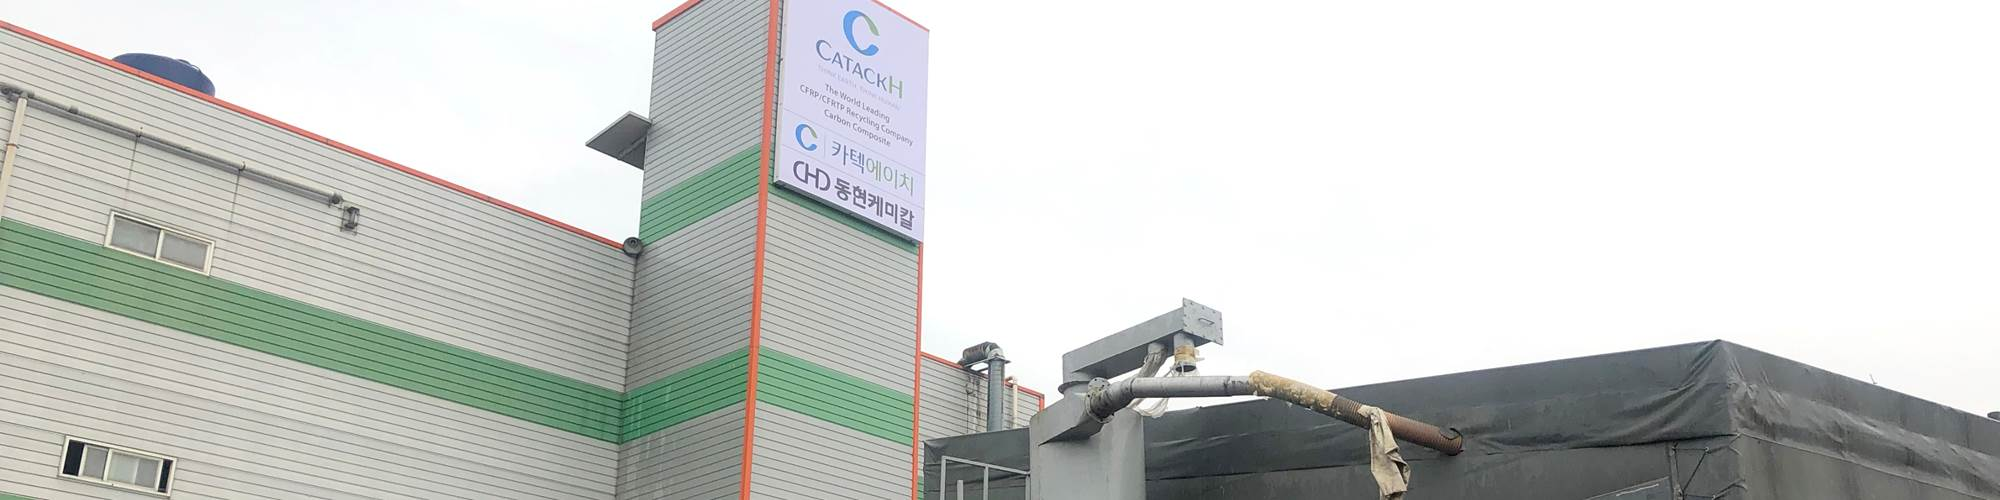 CATACK-H carbon fiber recycling facility